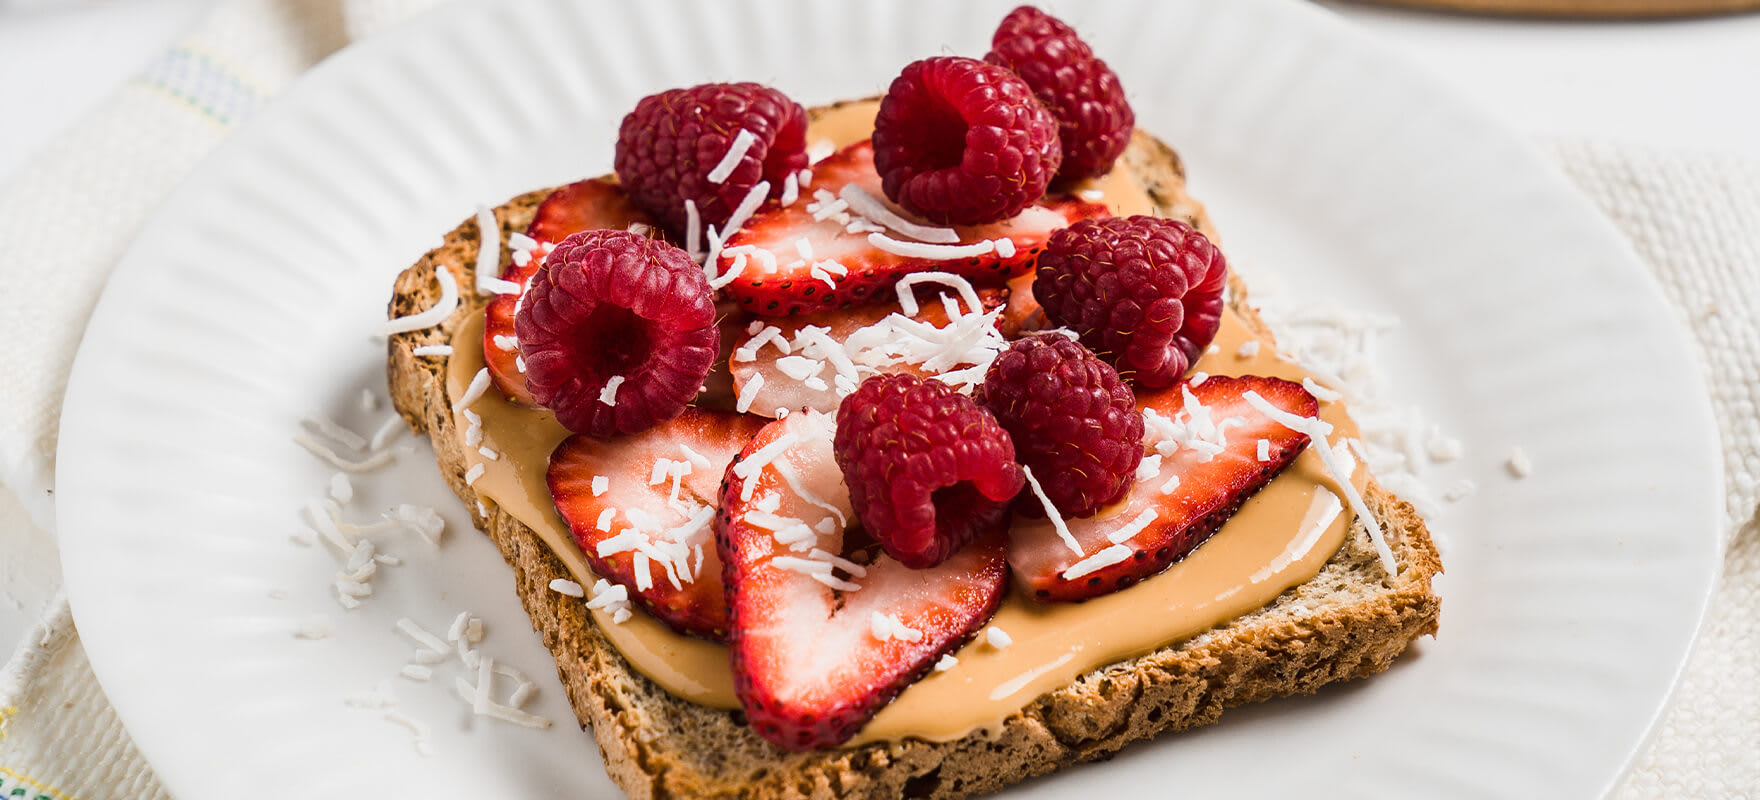 Peanut butter & red berry toast image 2